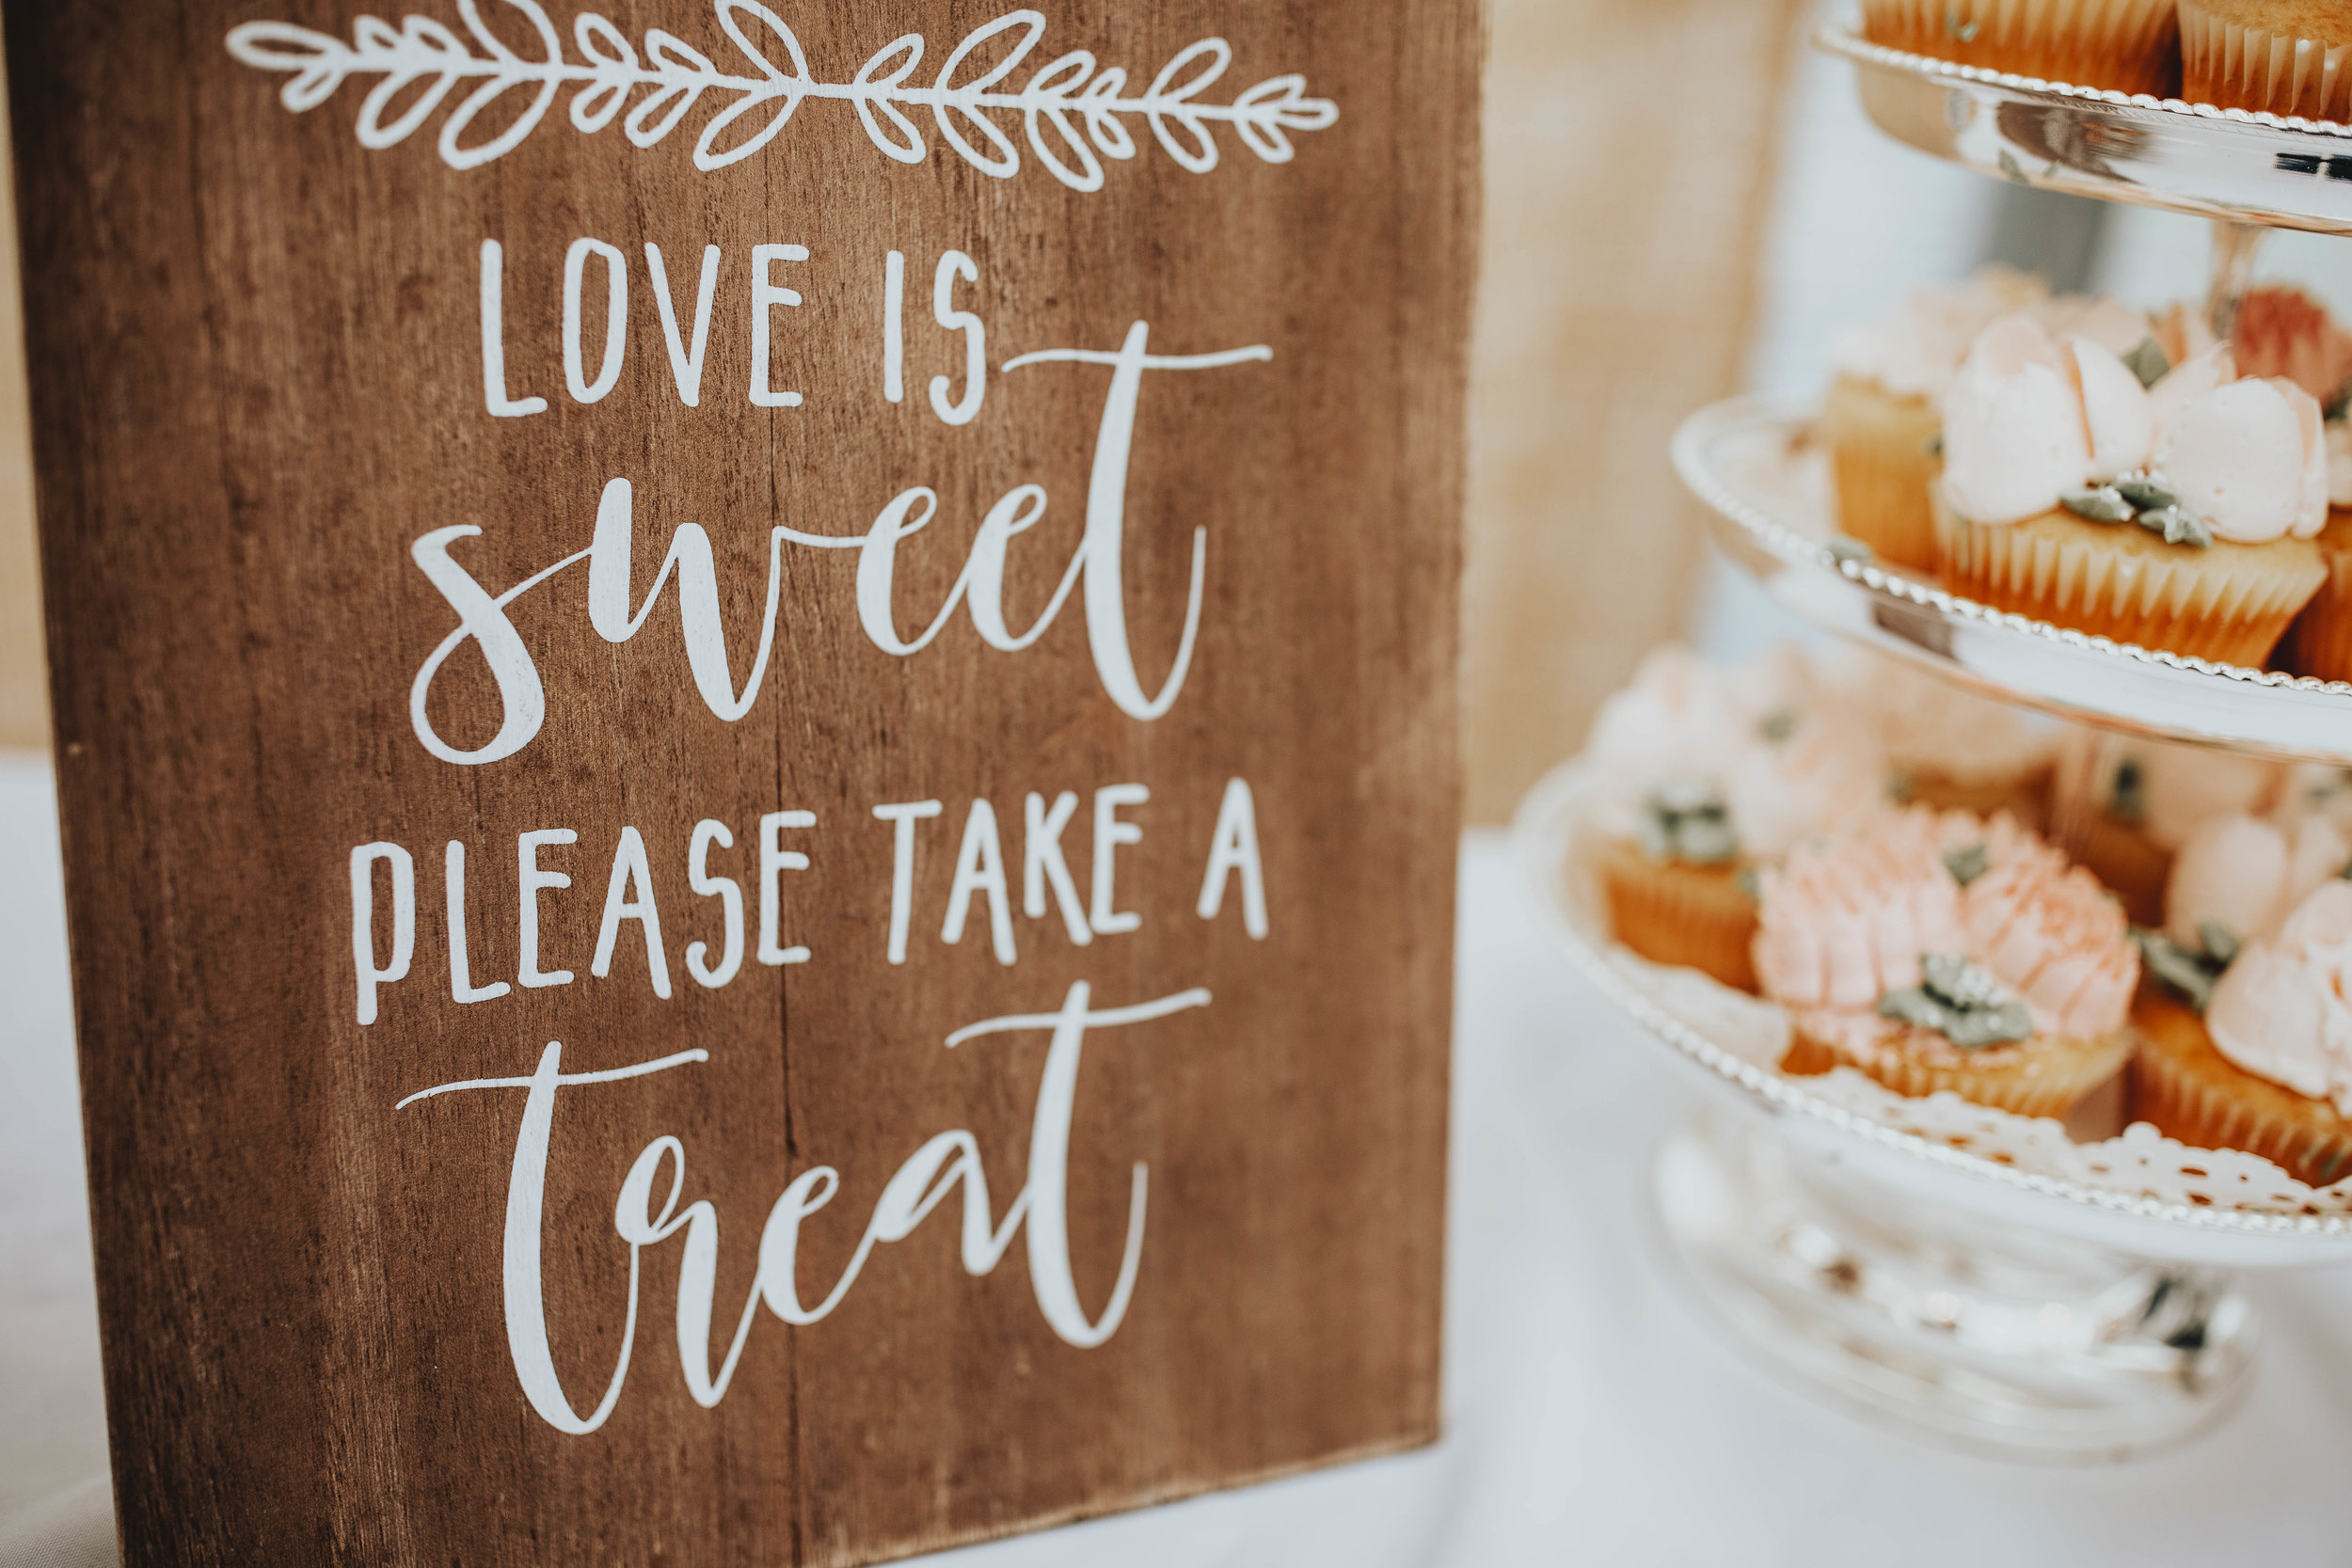 Bridal Shower Recap | Pine Barren Beauty | boho bridal shower, whimsical bridal shower,  boho bridal shower details, pink glazed donuts, bridal shower dessert table ideas, love is sweet please take a treat sign